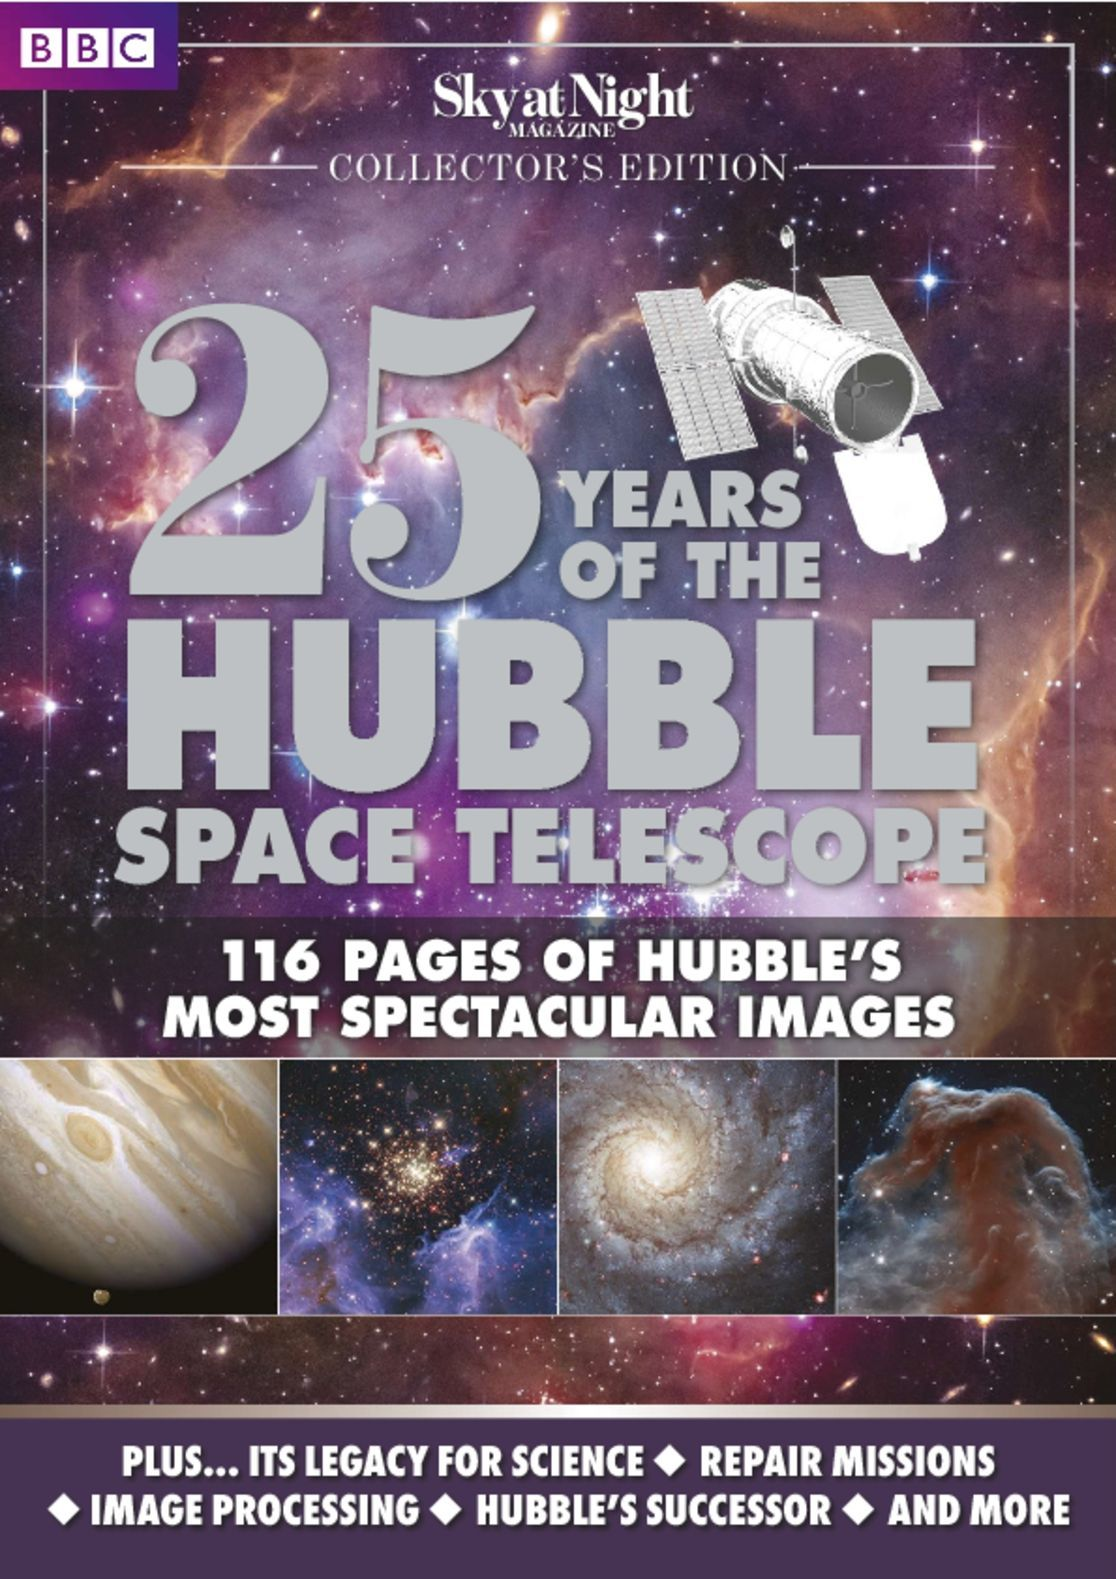 25 Years of the Hubble Space Telescope from BBC Sky at Night Digital